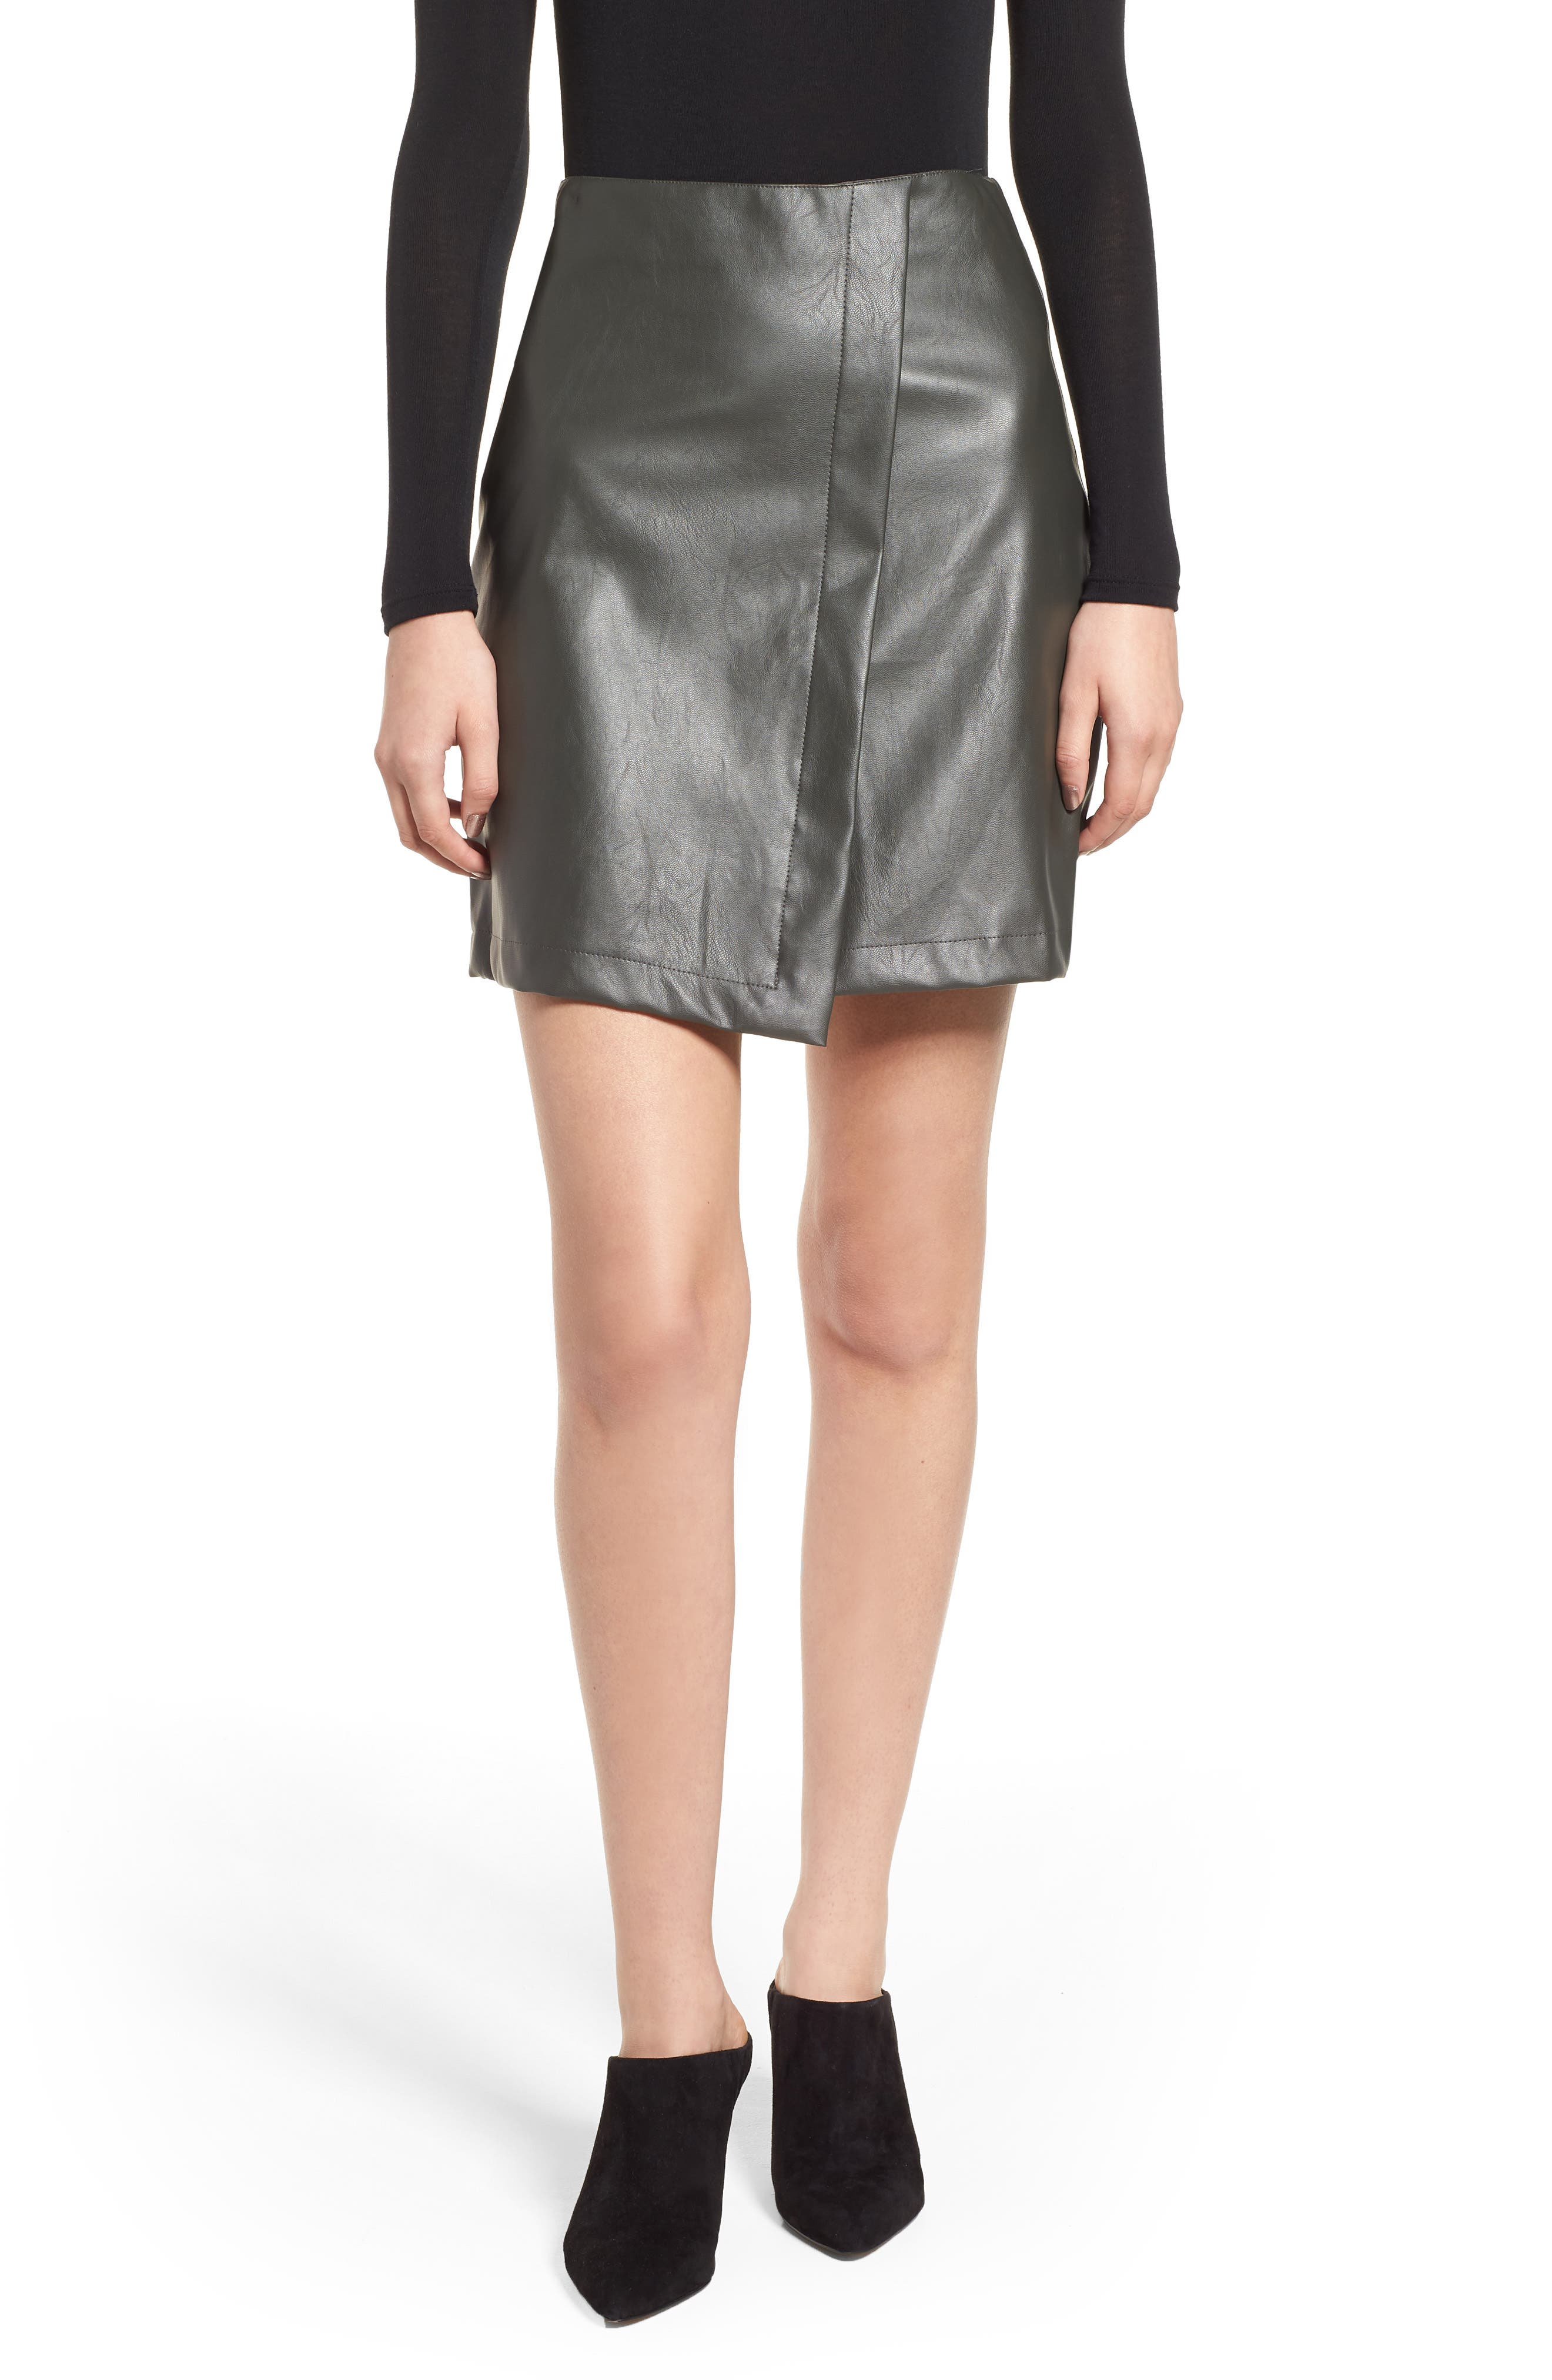 Bishop + Young A-Line Faux Leather Miniskirt,                         Main,                         color, 333